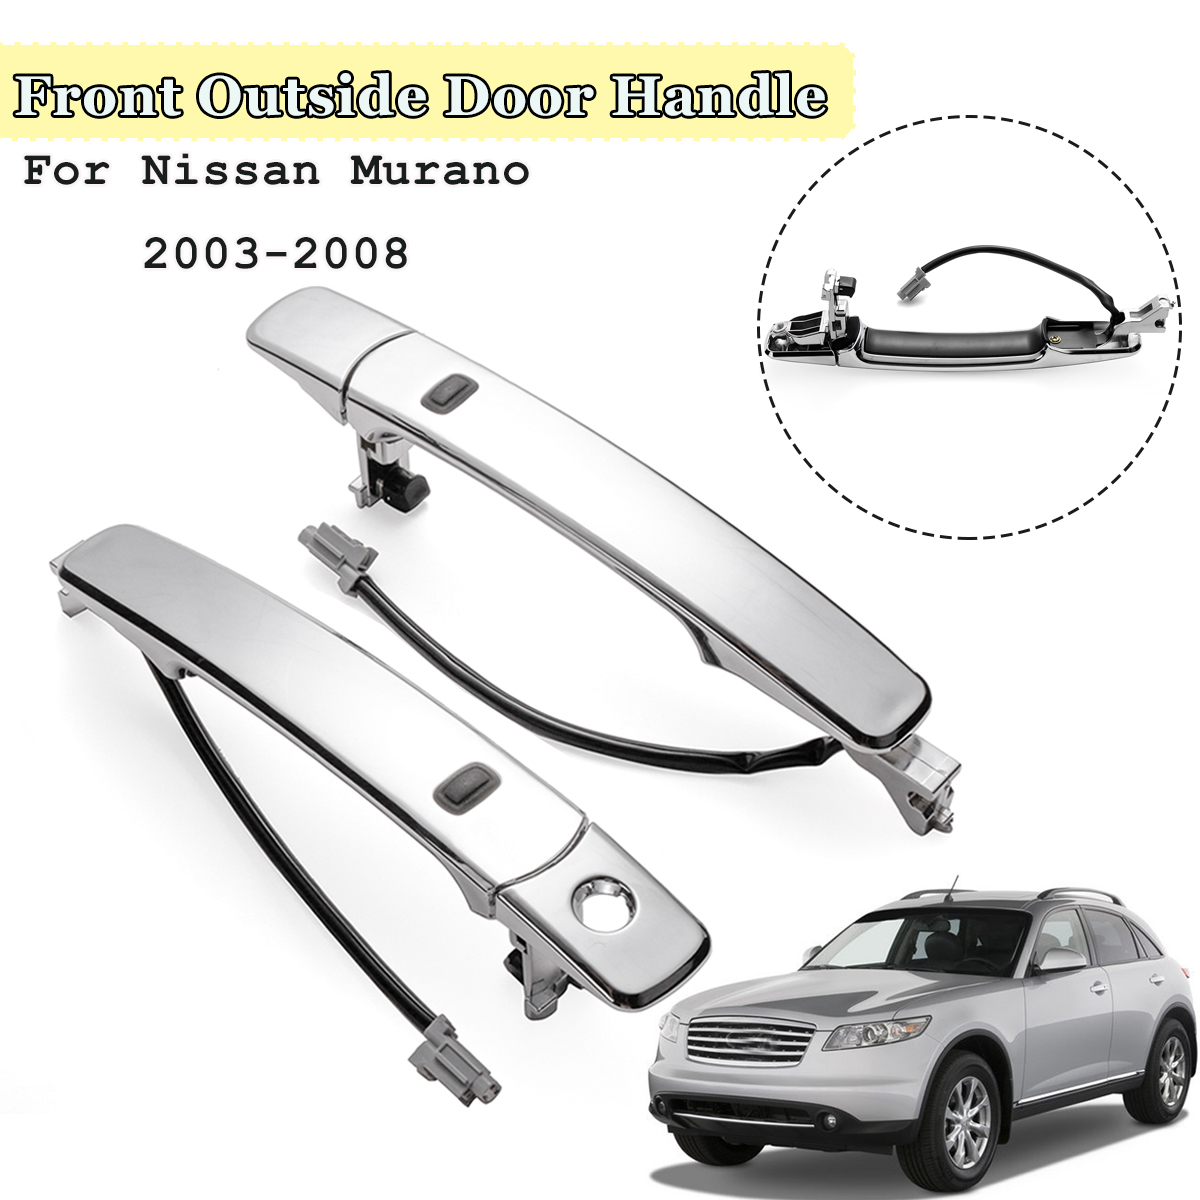 1Pc Front Left / Right Outside Door Handle Smart Entry For Nissan Murano 2003 2004 2005 2008